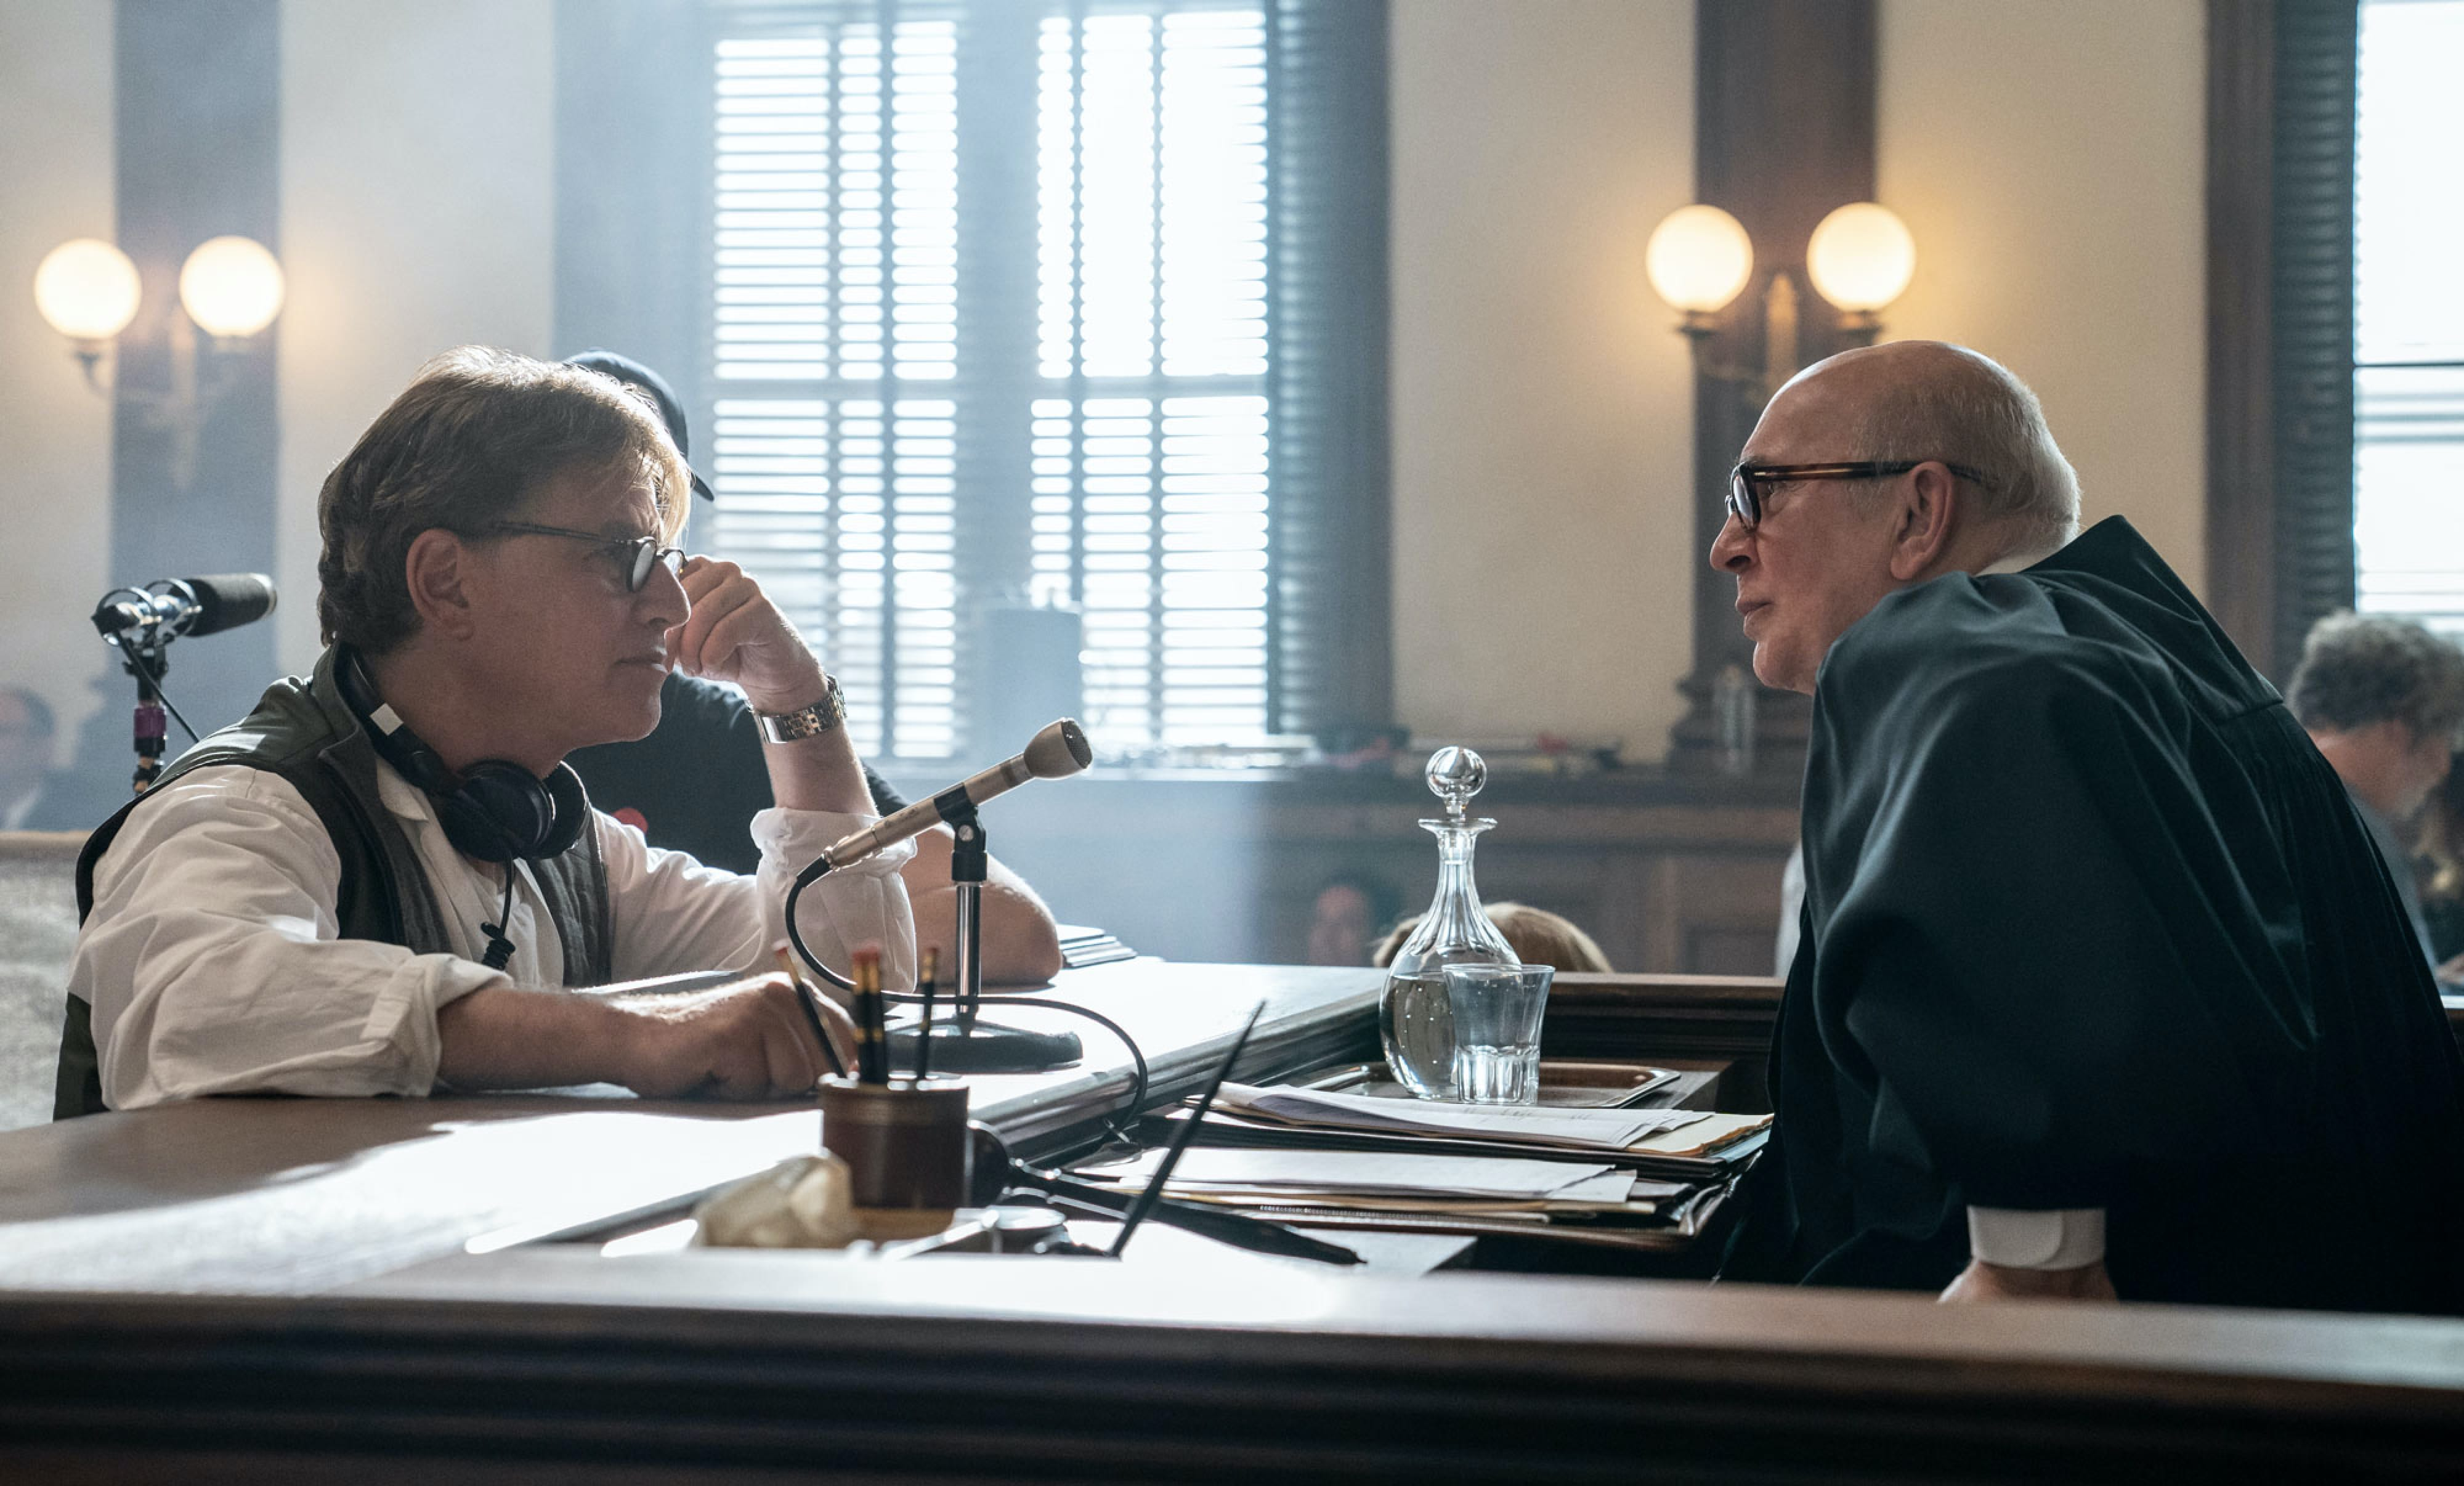 On the courtroom set, Sorkin has approached the bench to speak with Frank Langella, in costume as Judge Julius Hoffman.